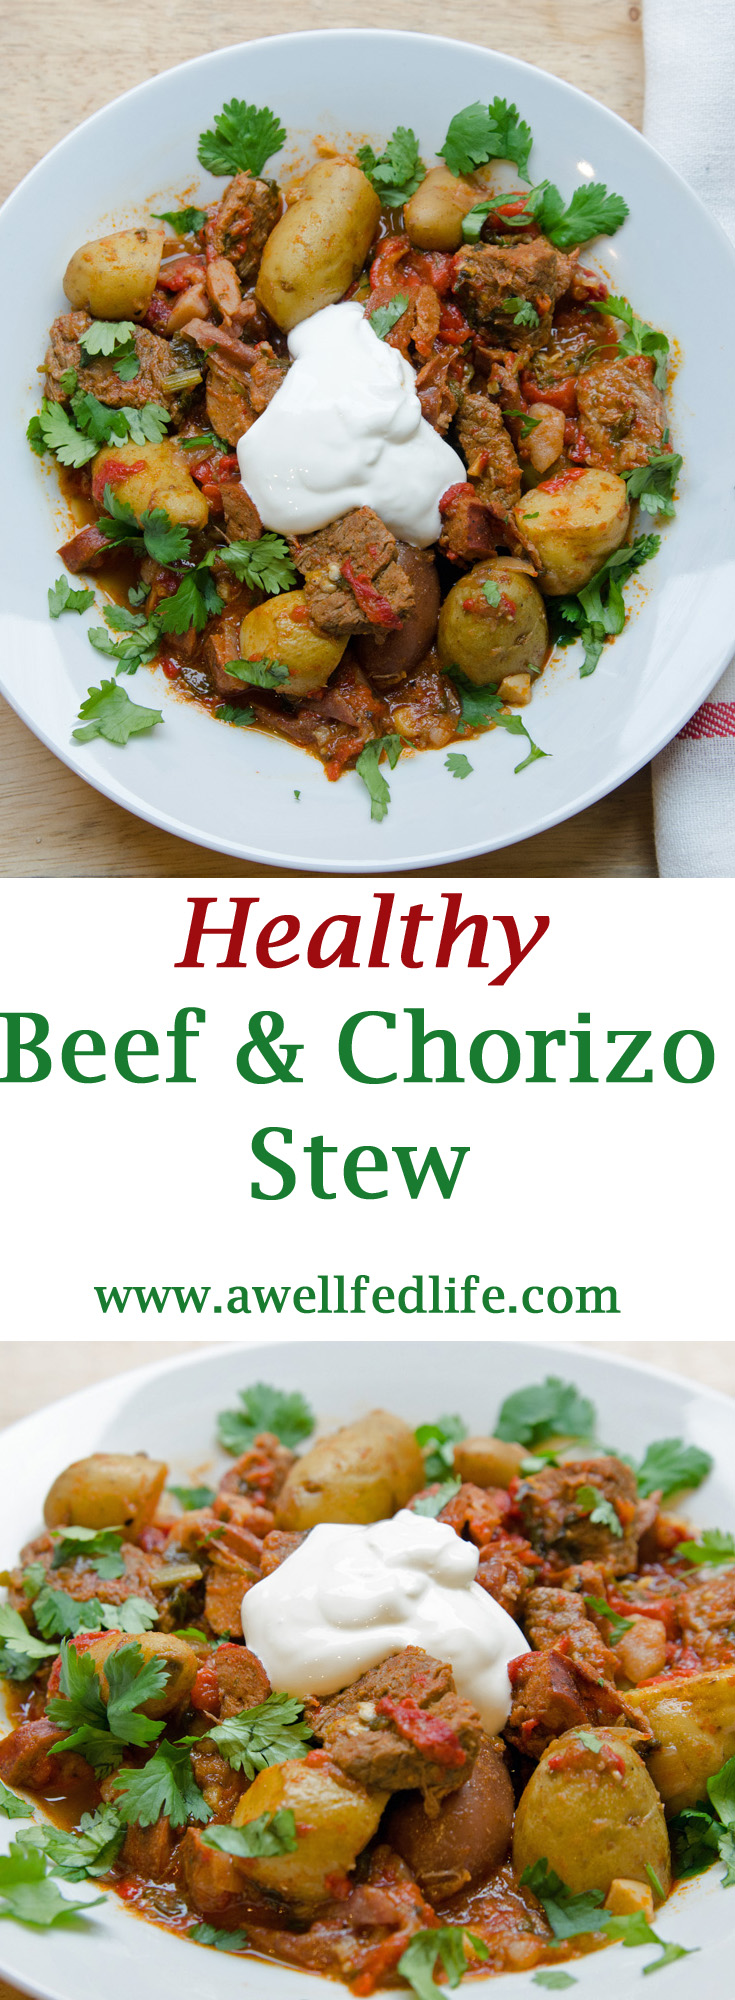 Healthy Beef Chorizo Stew